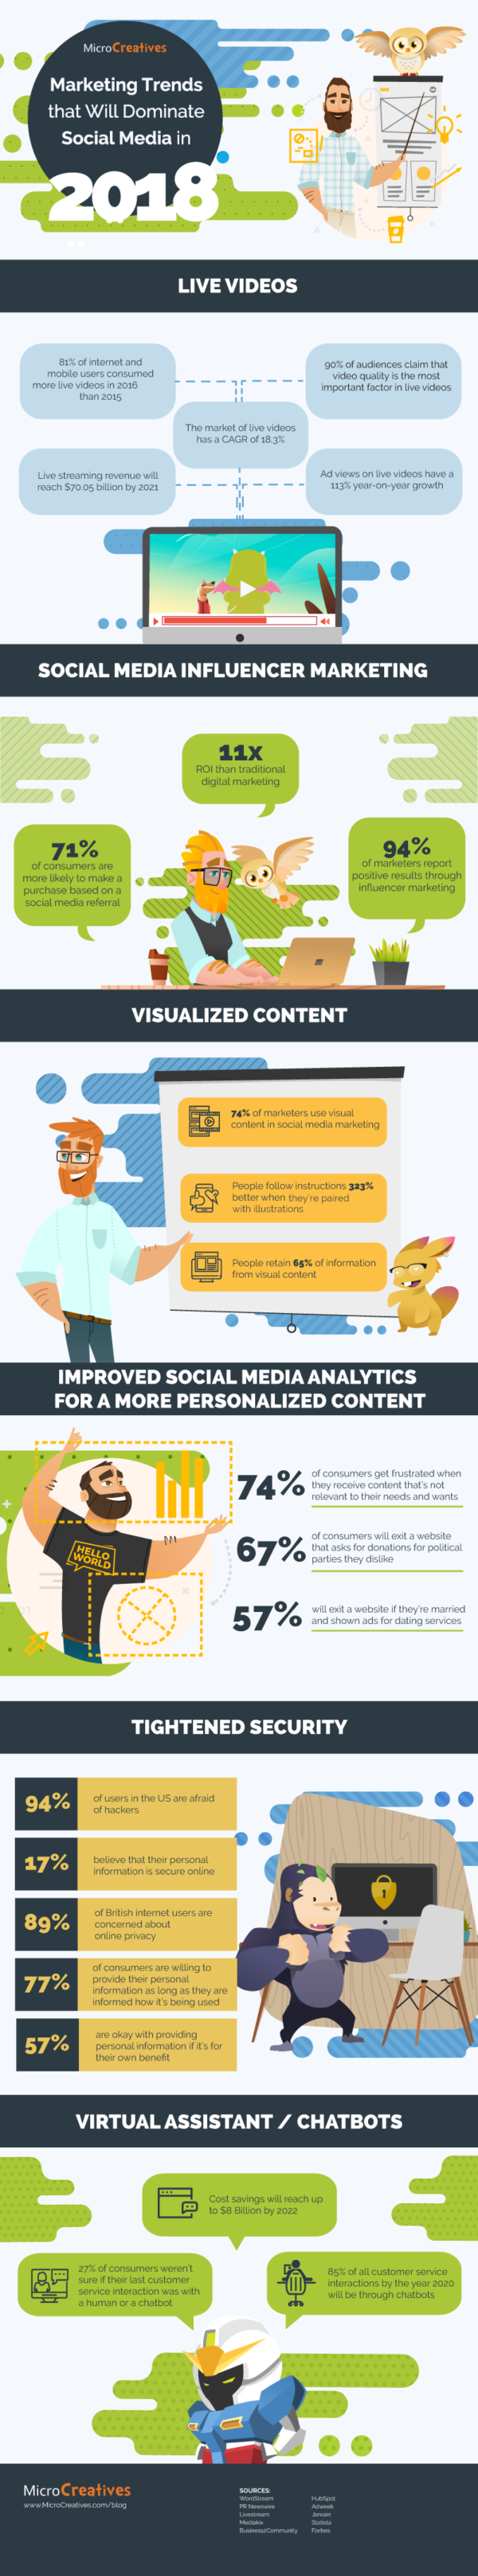 Marketing Trends that will Dominate Social Media in 2018 [Infographic] | Social Media Today